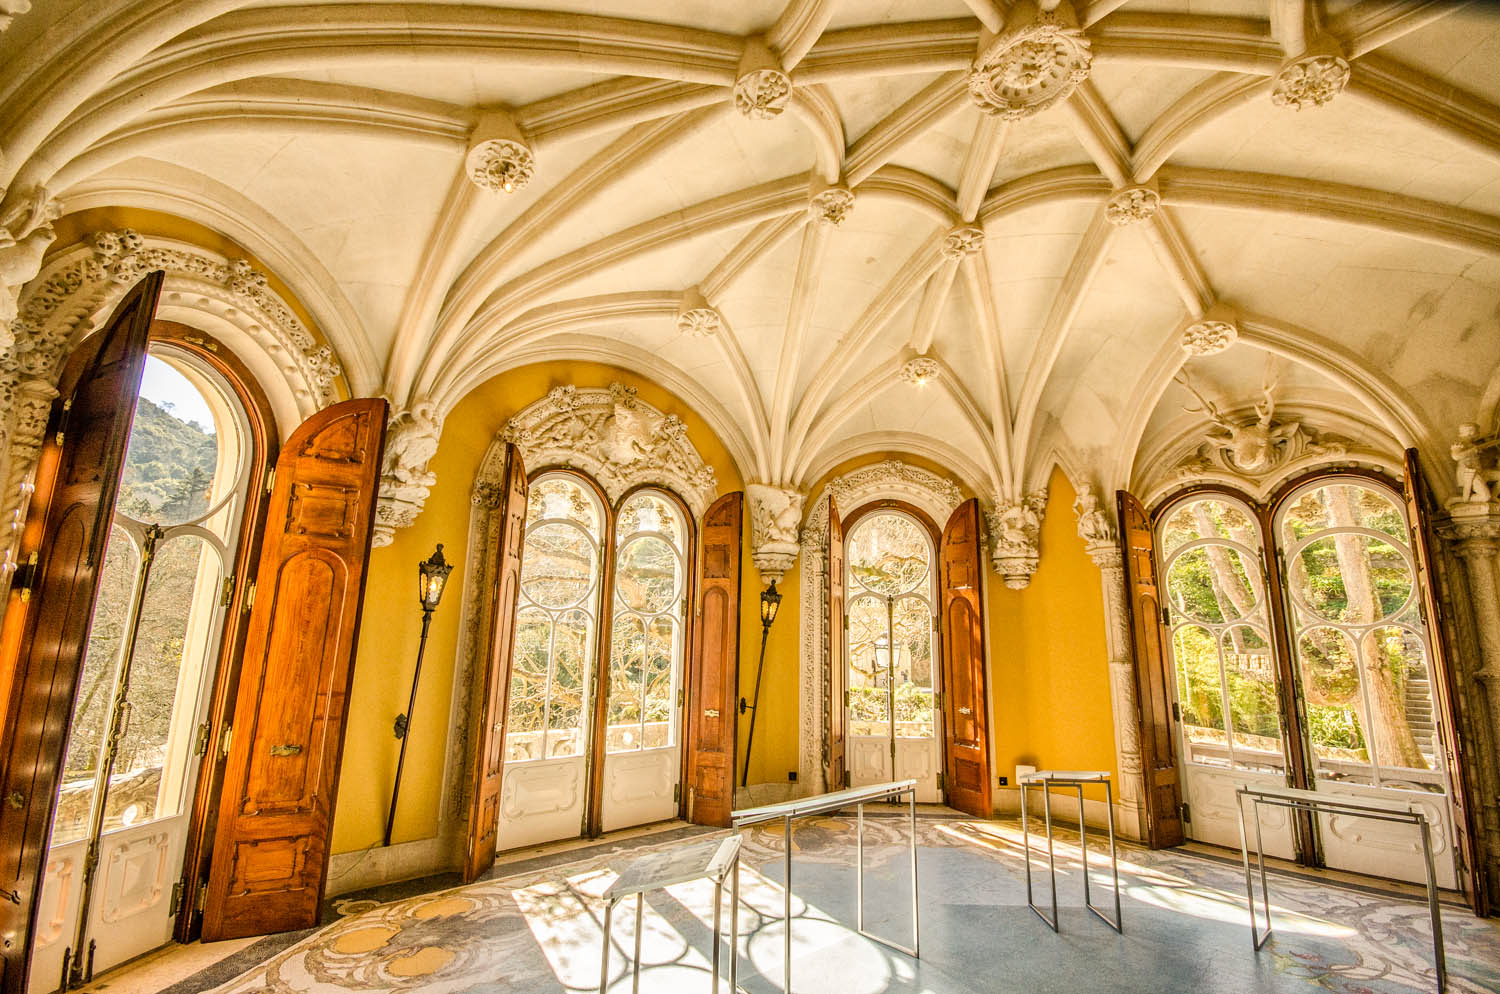 Sightseeing in Sintra with Sintra Photo Tour: Quinta da Regaleira